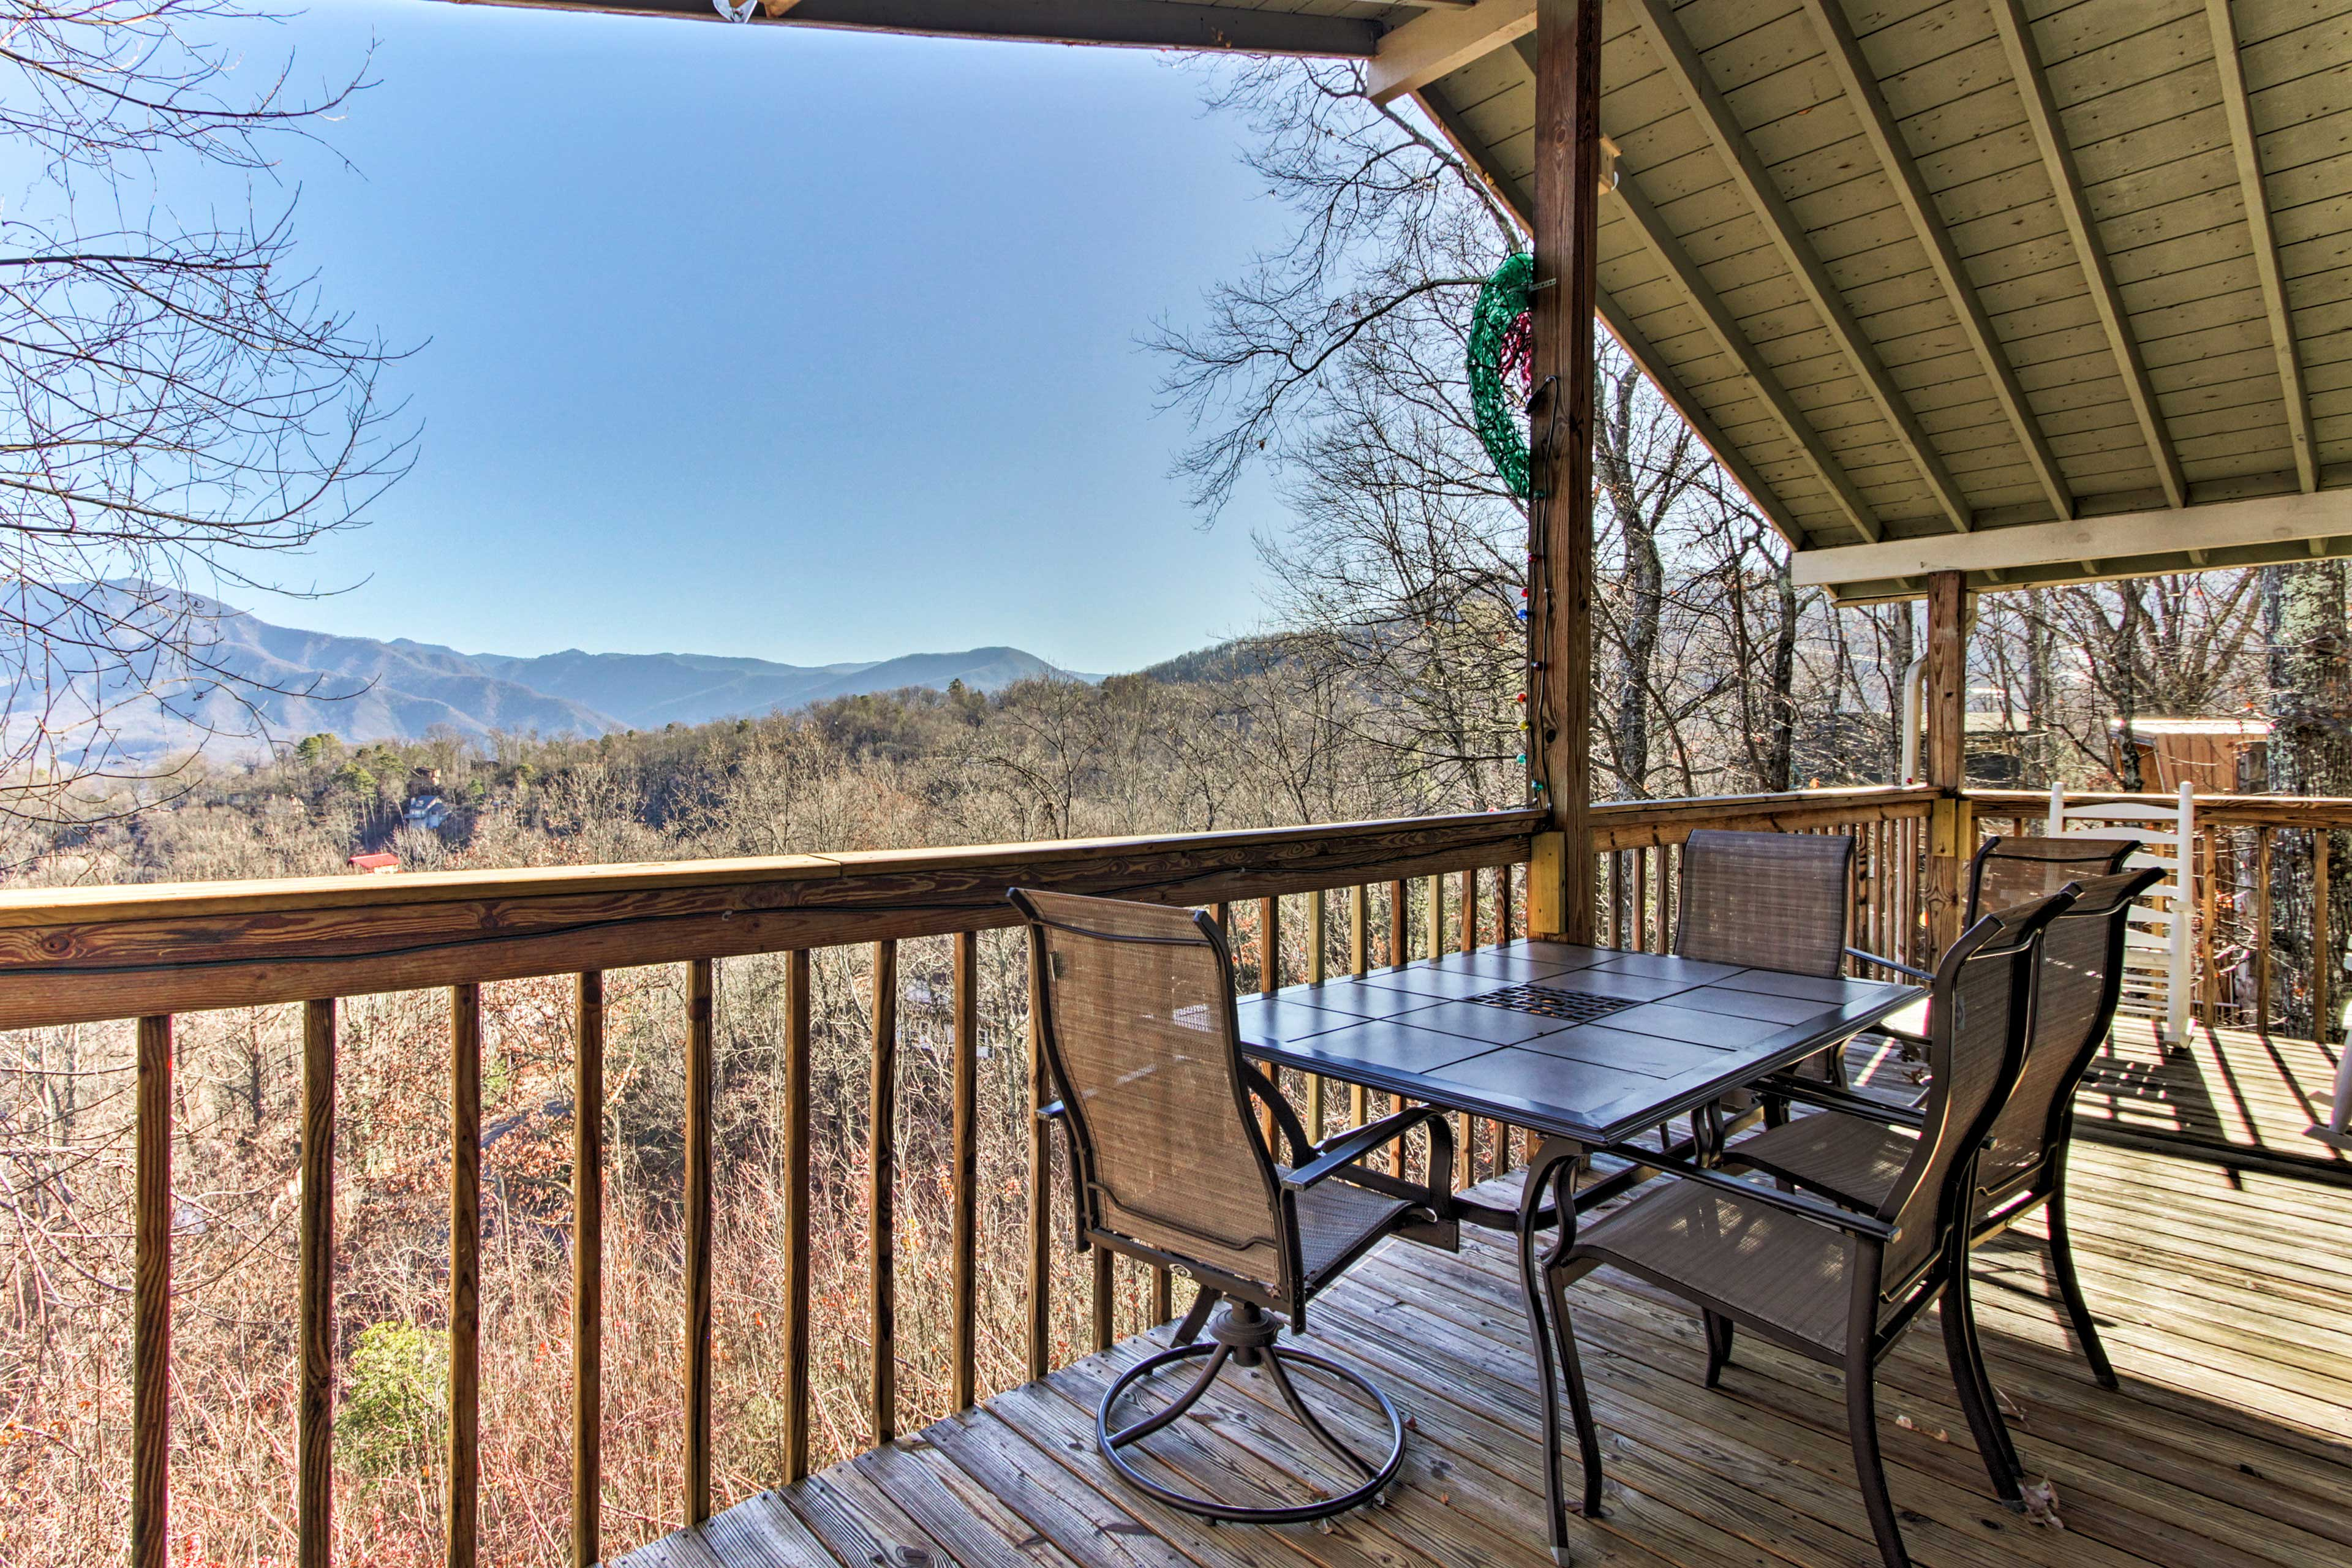 You'll love the sweeping views of the surrounding mountains.